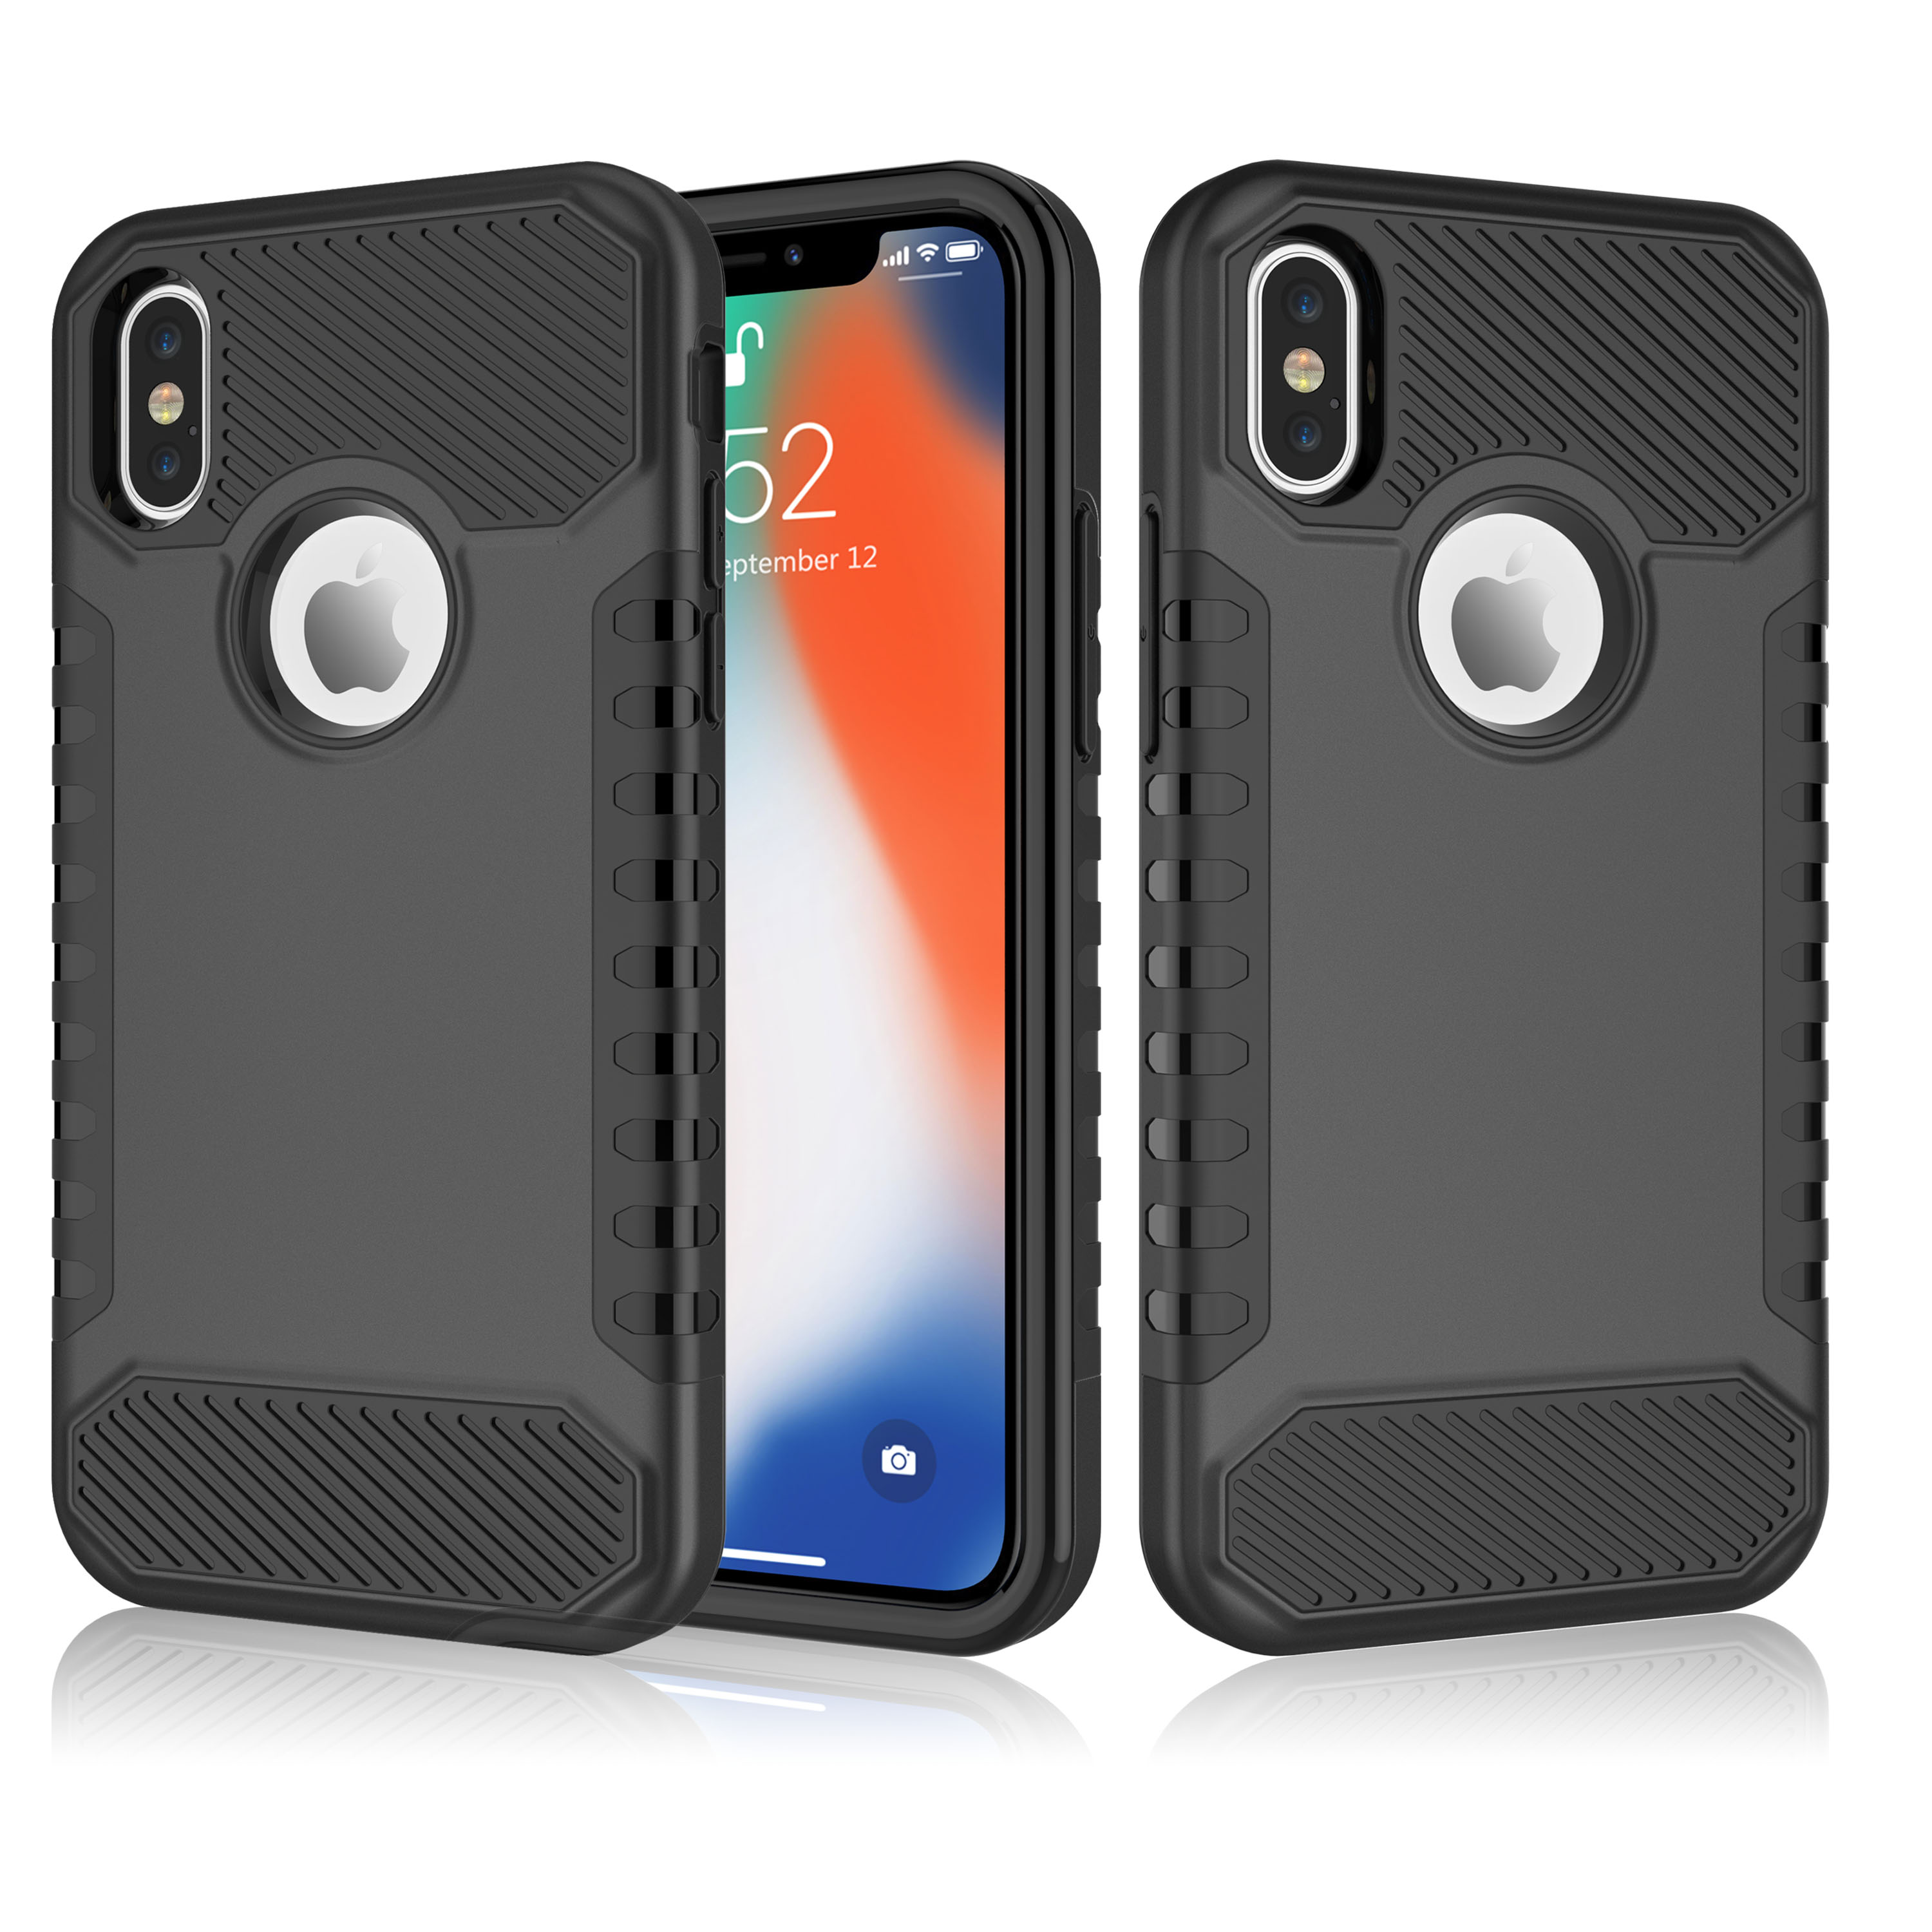 """iPhone X Phone Case, iPhone 10 Phone Case, iPhone X Edition Case Cover, Njjex Shock Absorption 2 Piece Case Cover For Apple 5.8"""" iPhone X (2017 Release) - Black"""